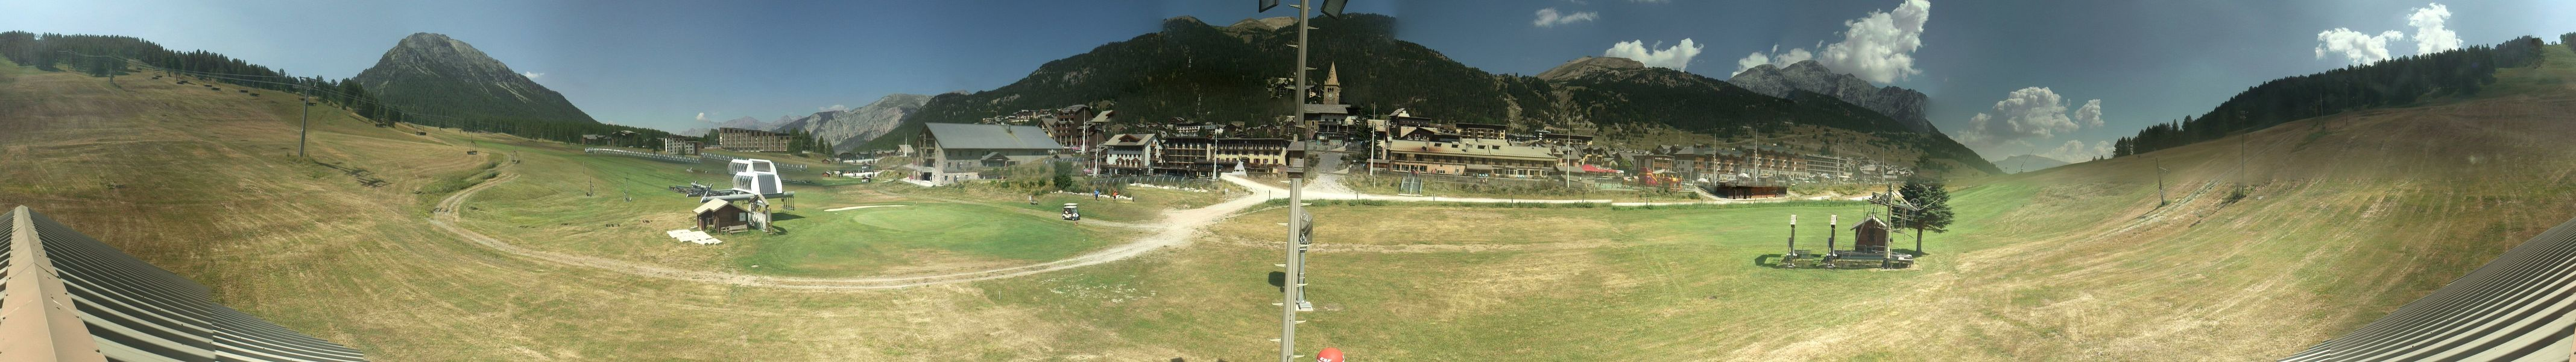 Webcam <br><span> montgenevre</span>